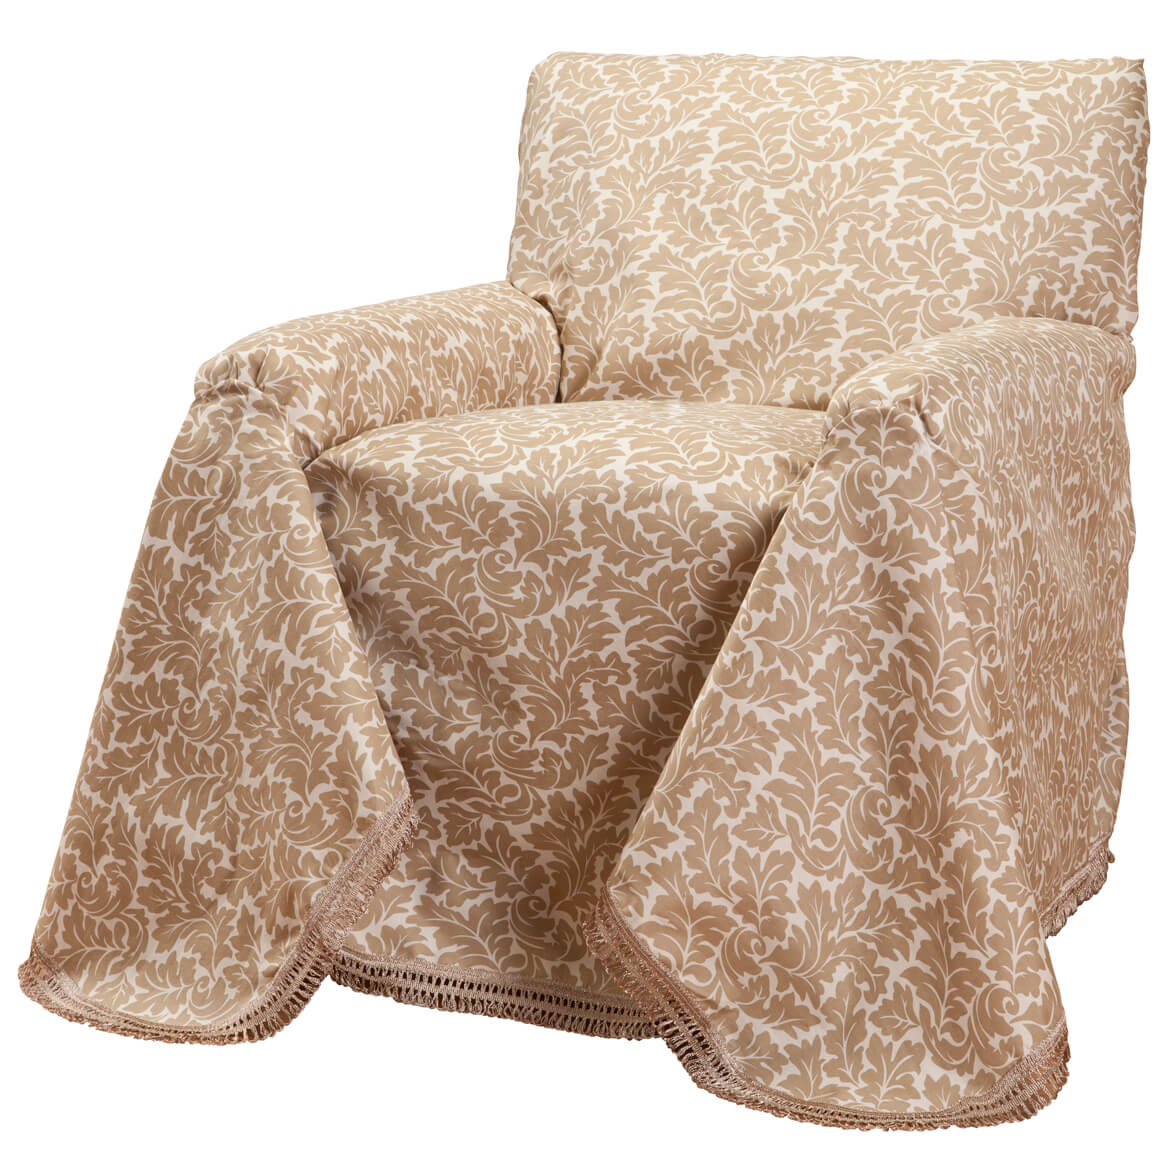 Damask Chair Damask Ii Chair Throw 70 X 90